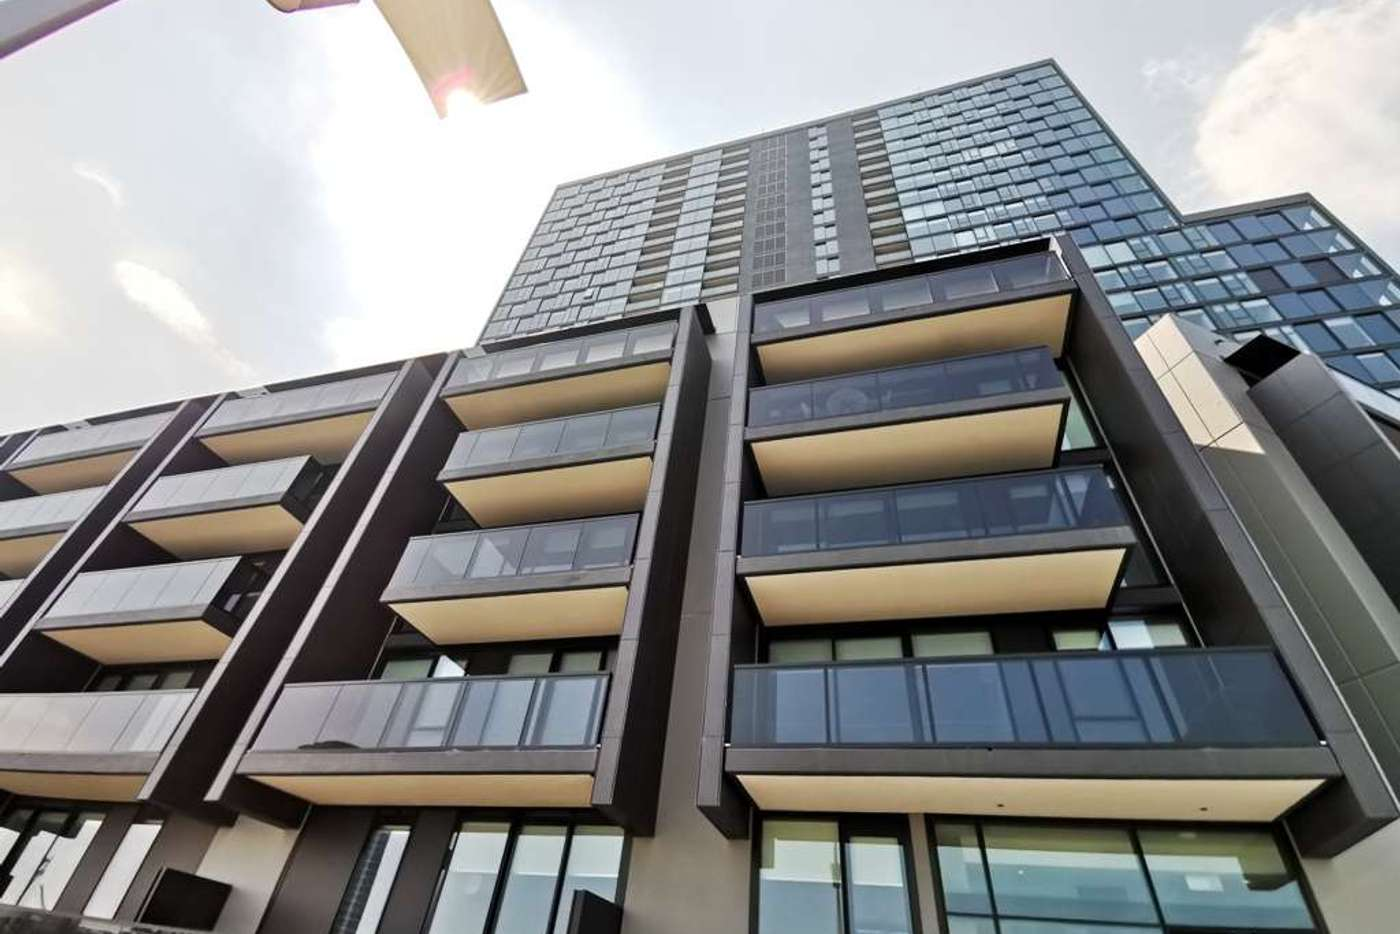 Main view of Homely apartment listing, 1205/915 COLLINS STREET, Docklands VIC 3008